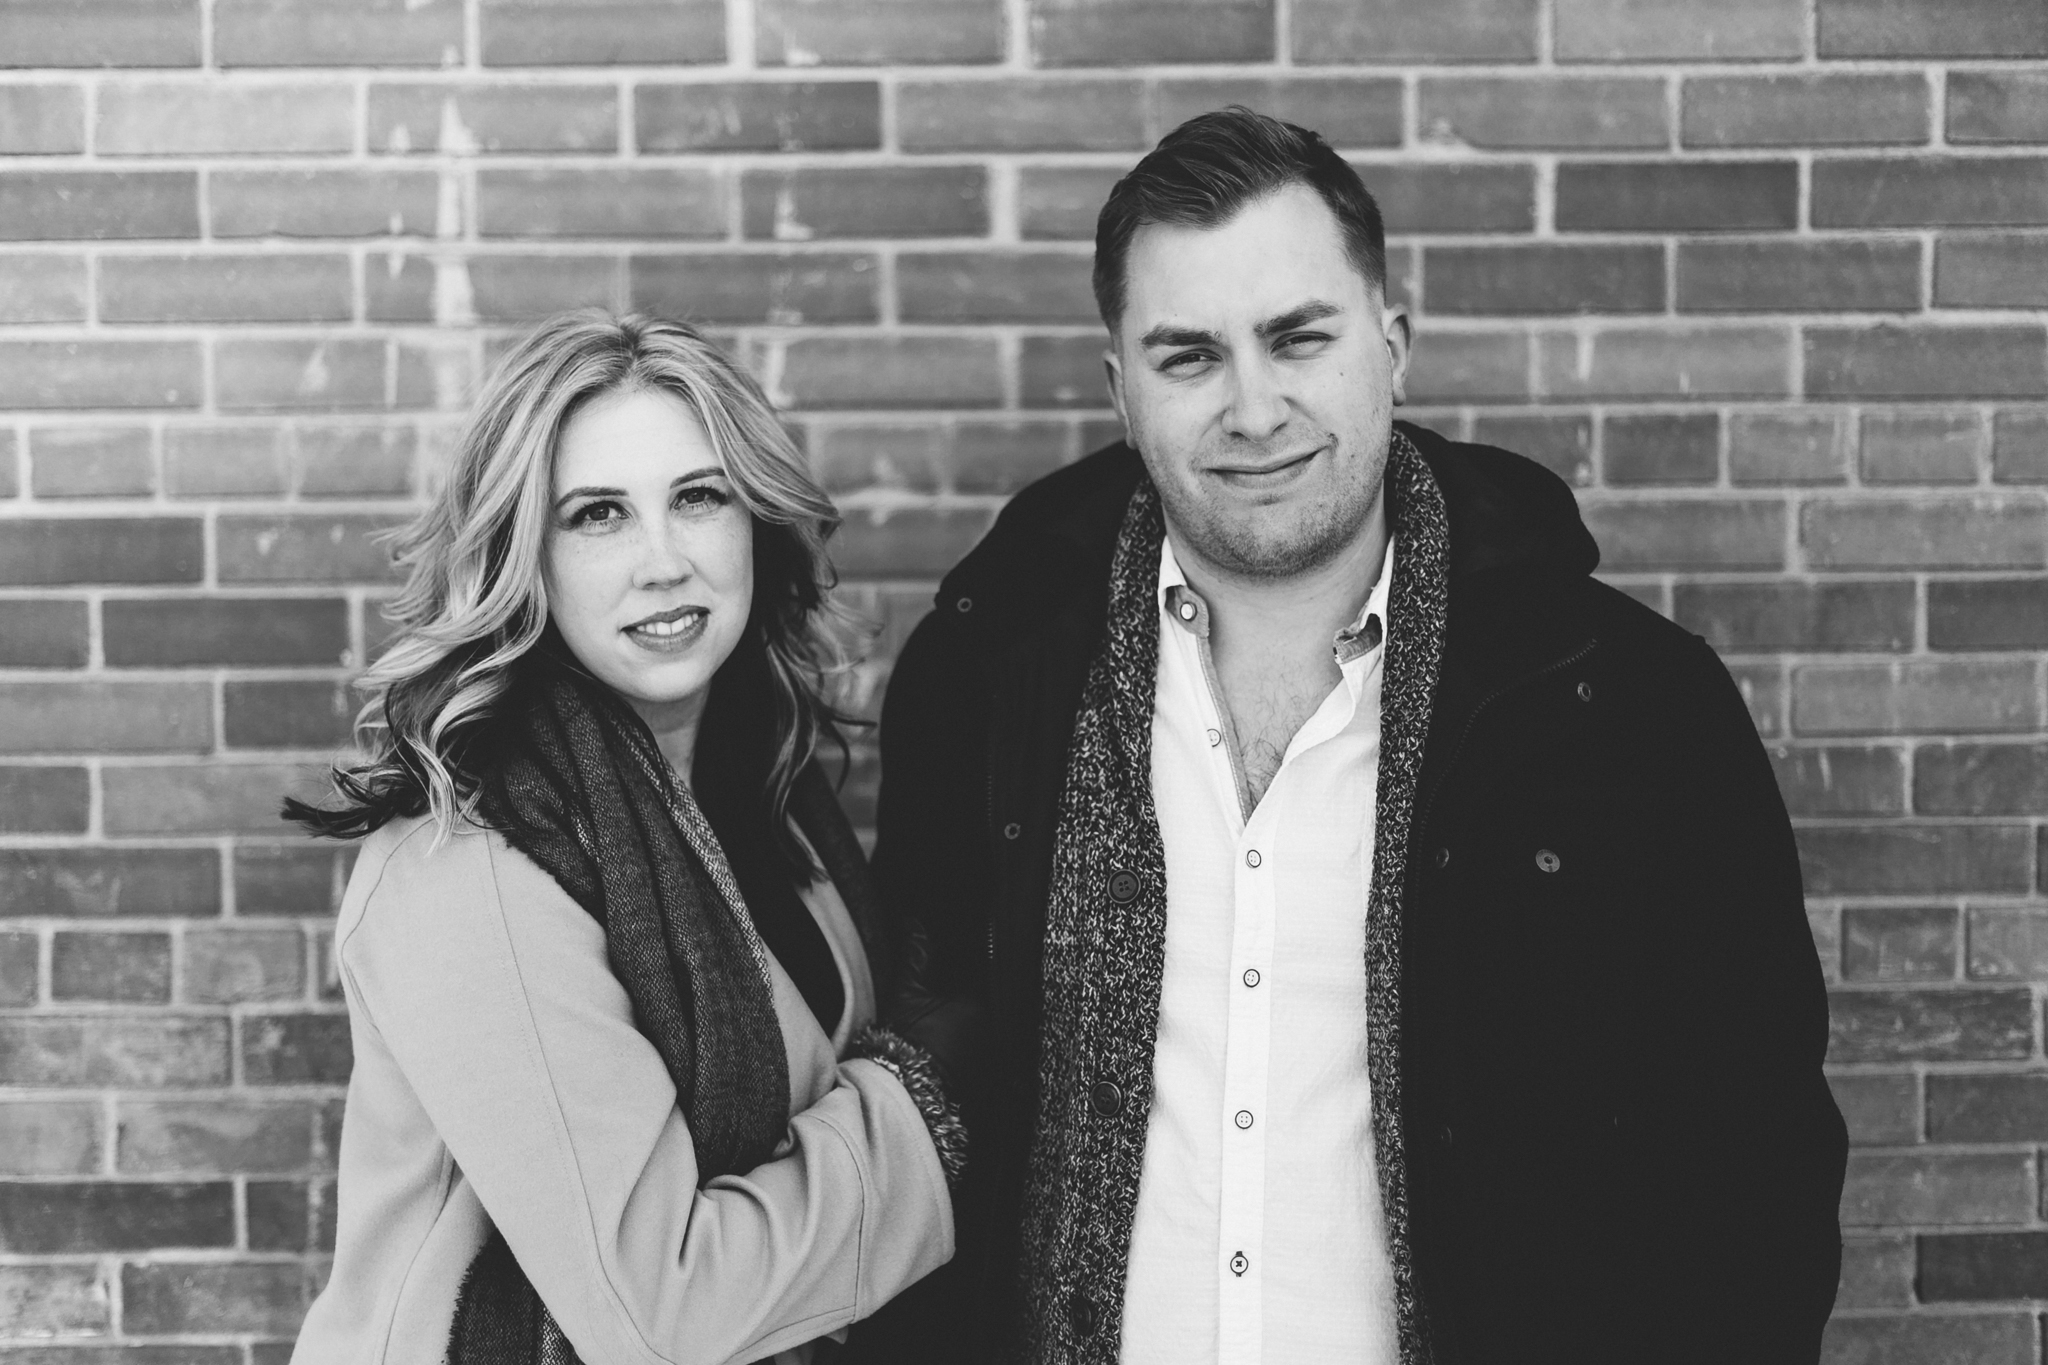 lethbridge-photographer-love-and-be-loved-photography-brandon-danielle-winter-engagement-downtown-yql-picture-image-photo-40.jpg